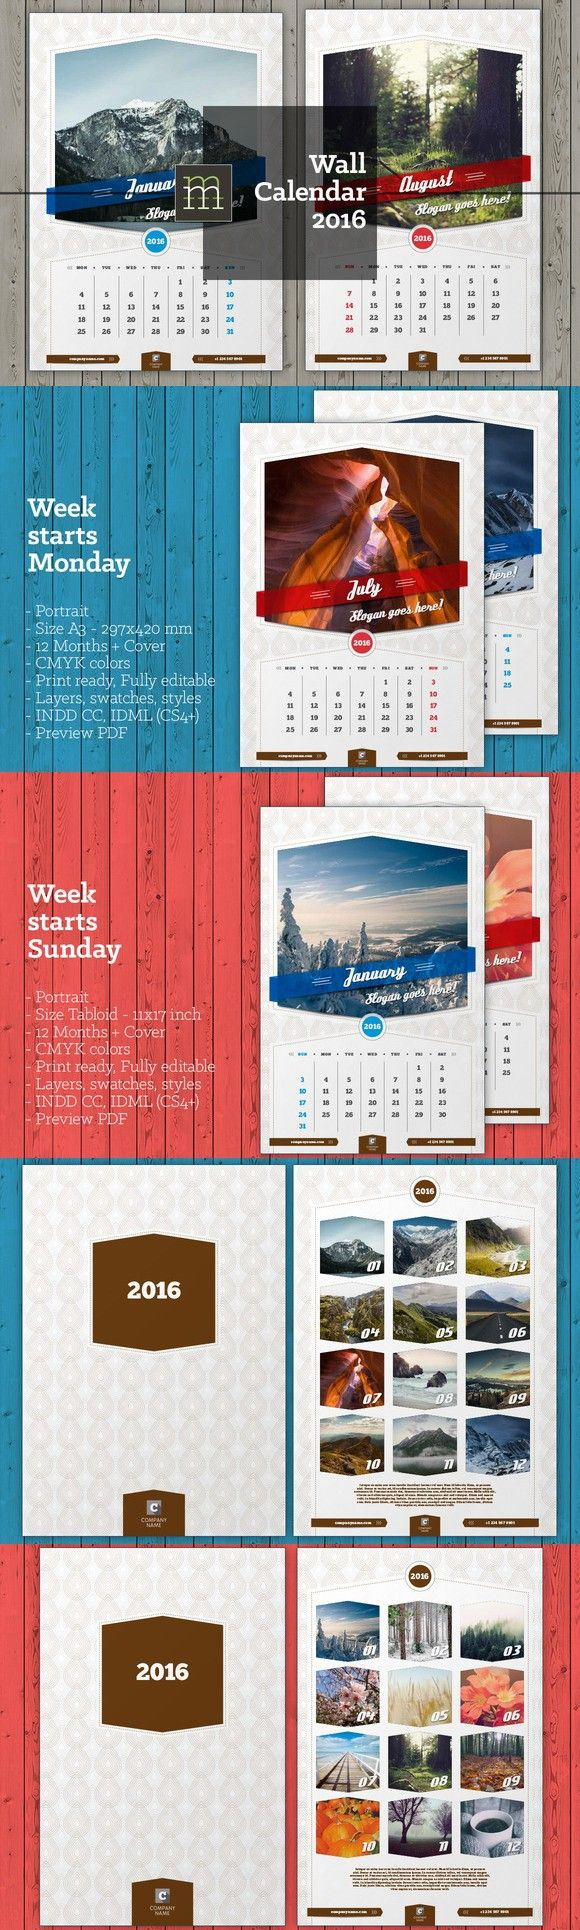 Wall Calendar 2016 (WC03). Stationery Templates